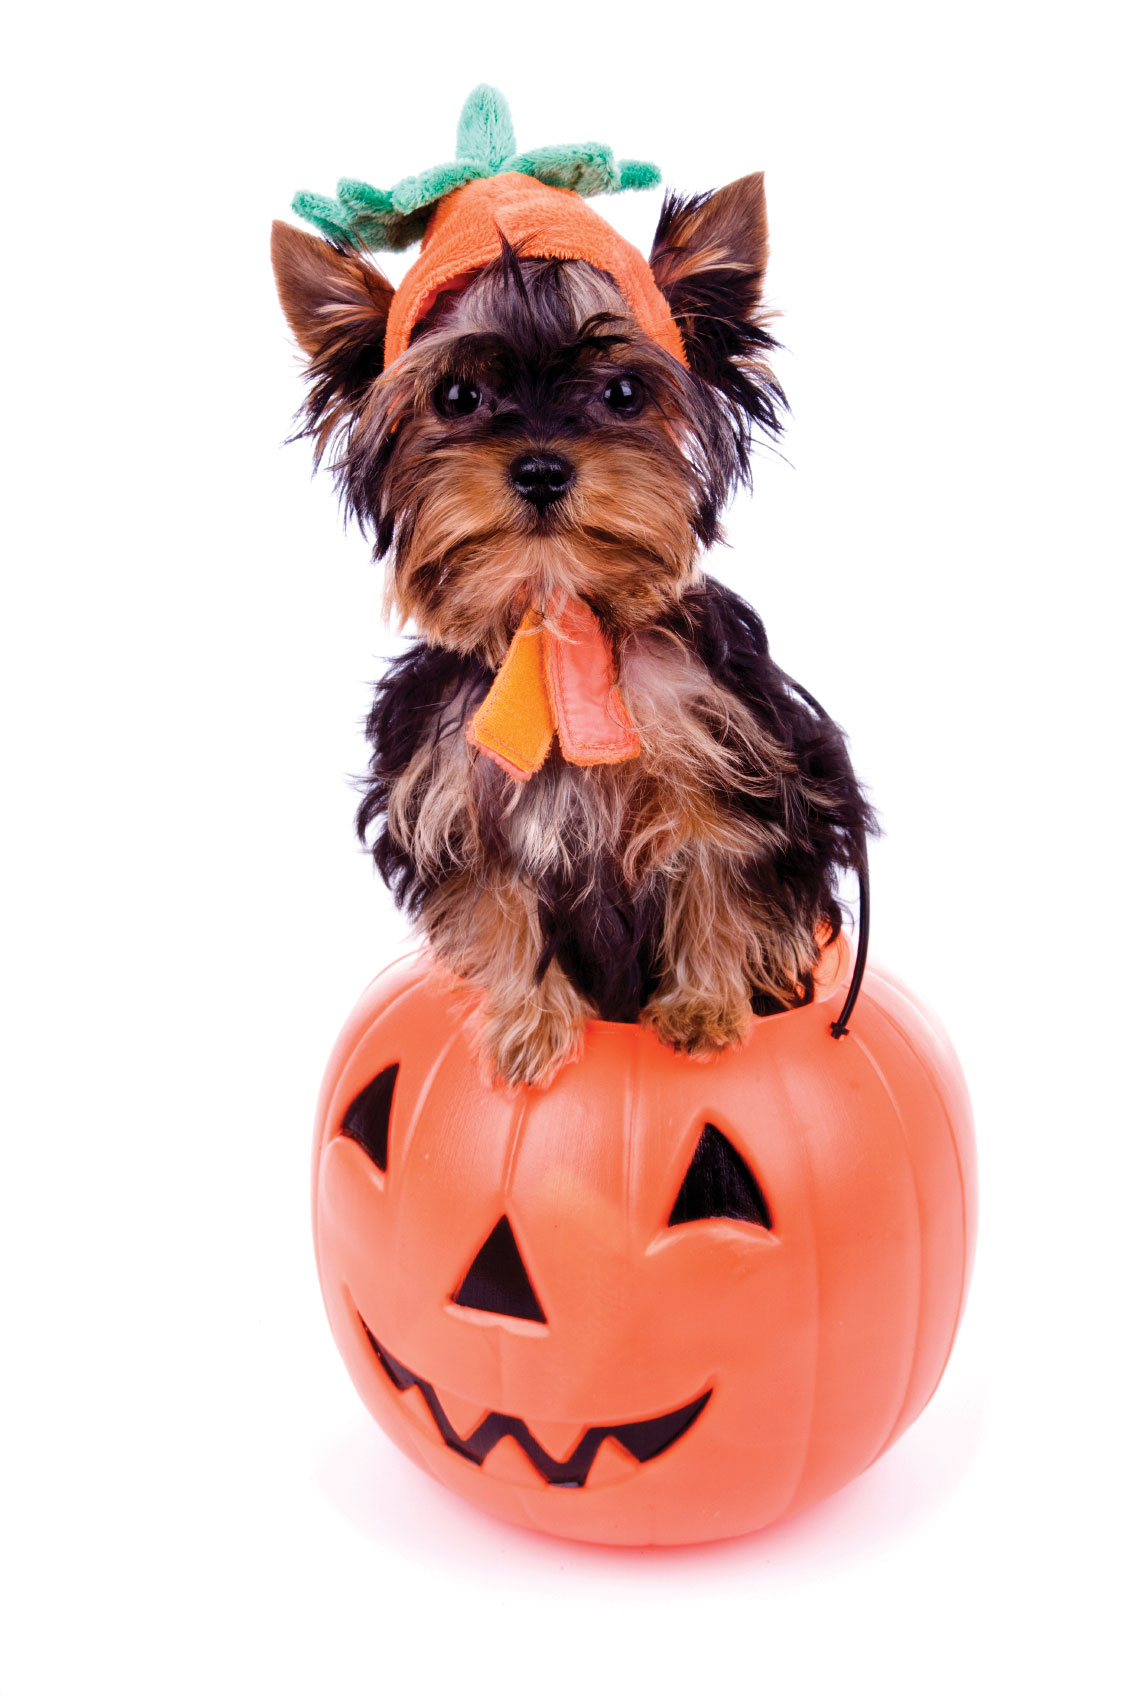 October Pet Events In Houston Still To Come!